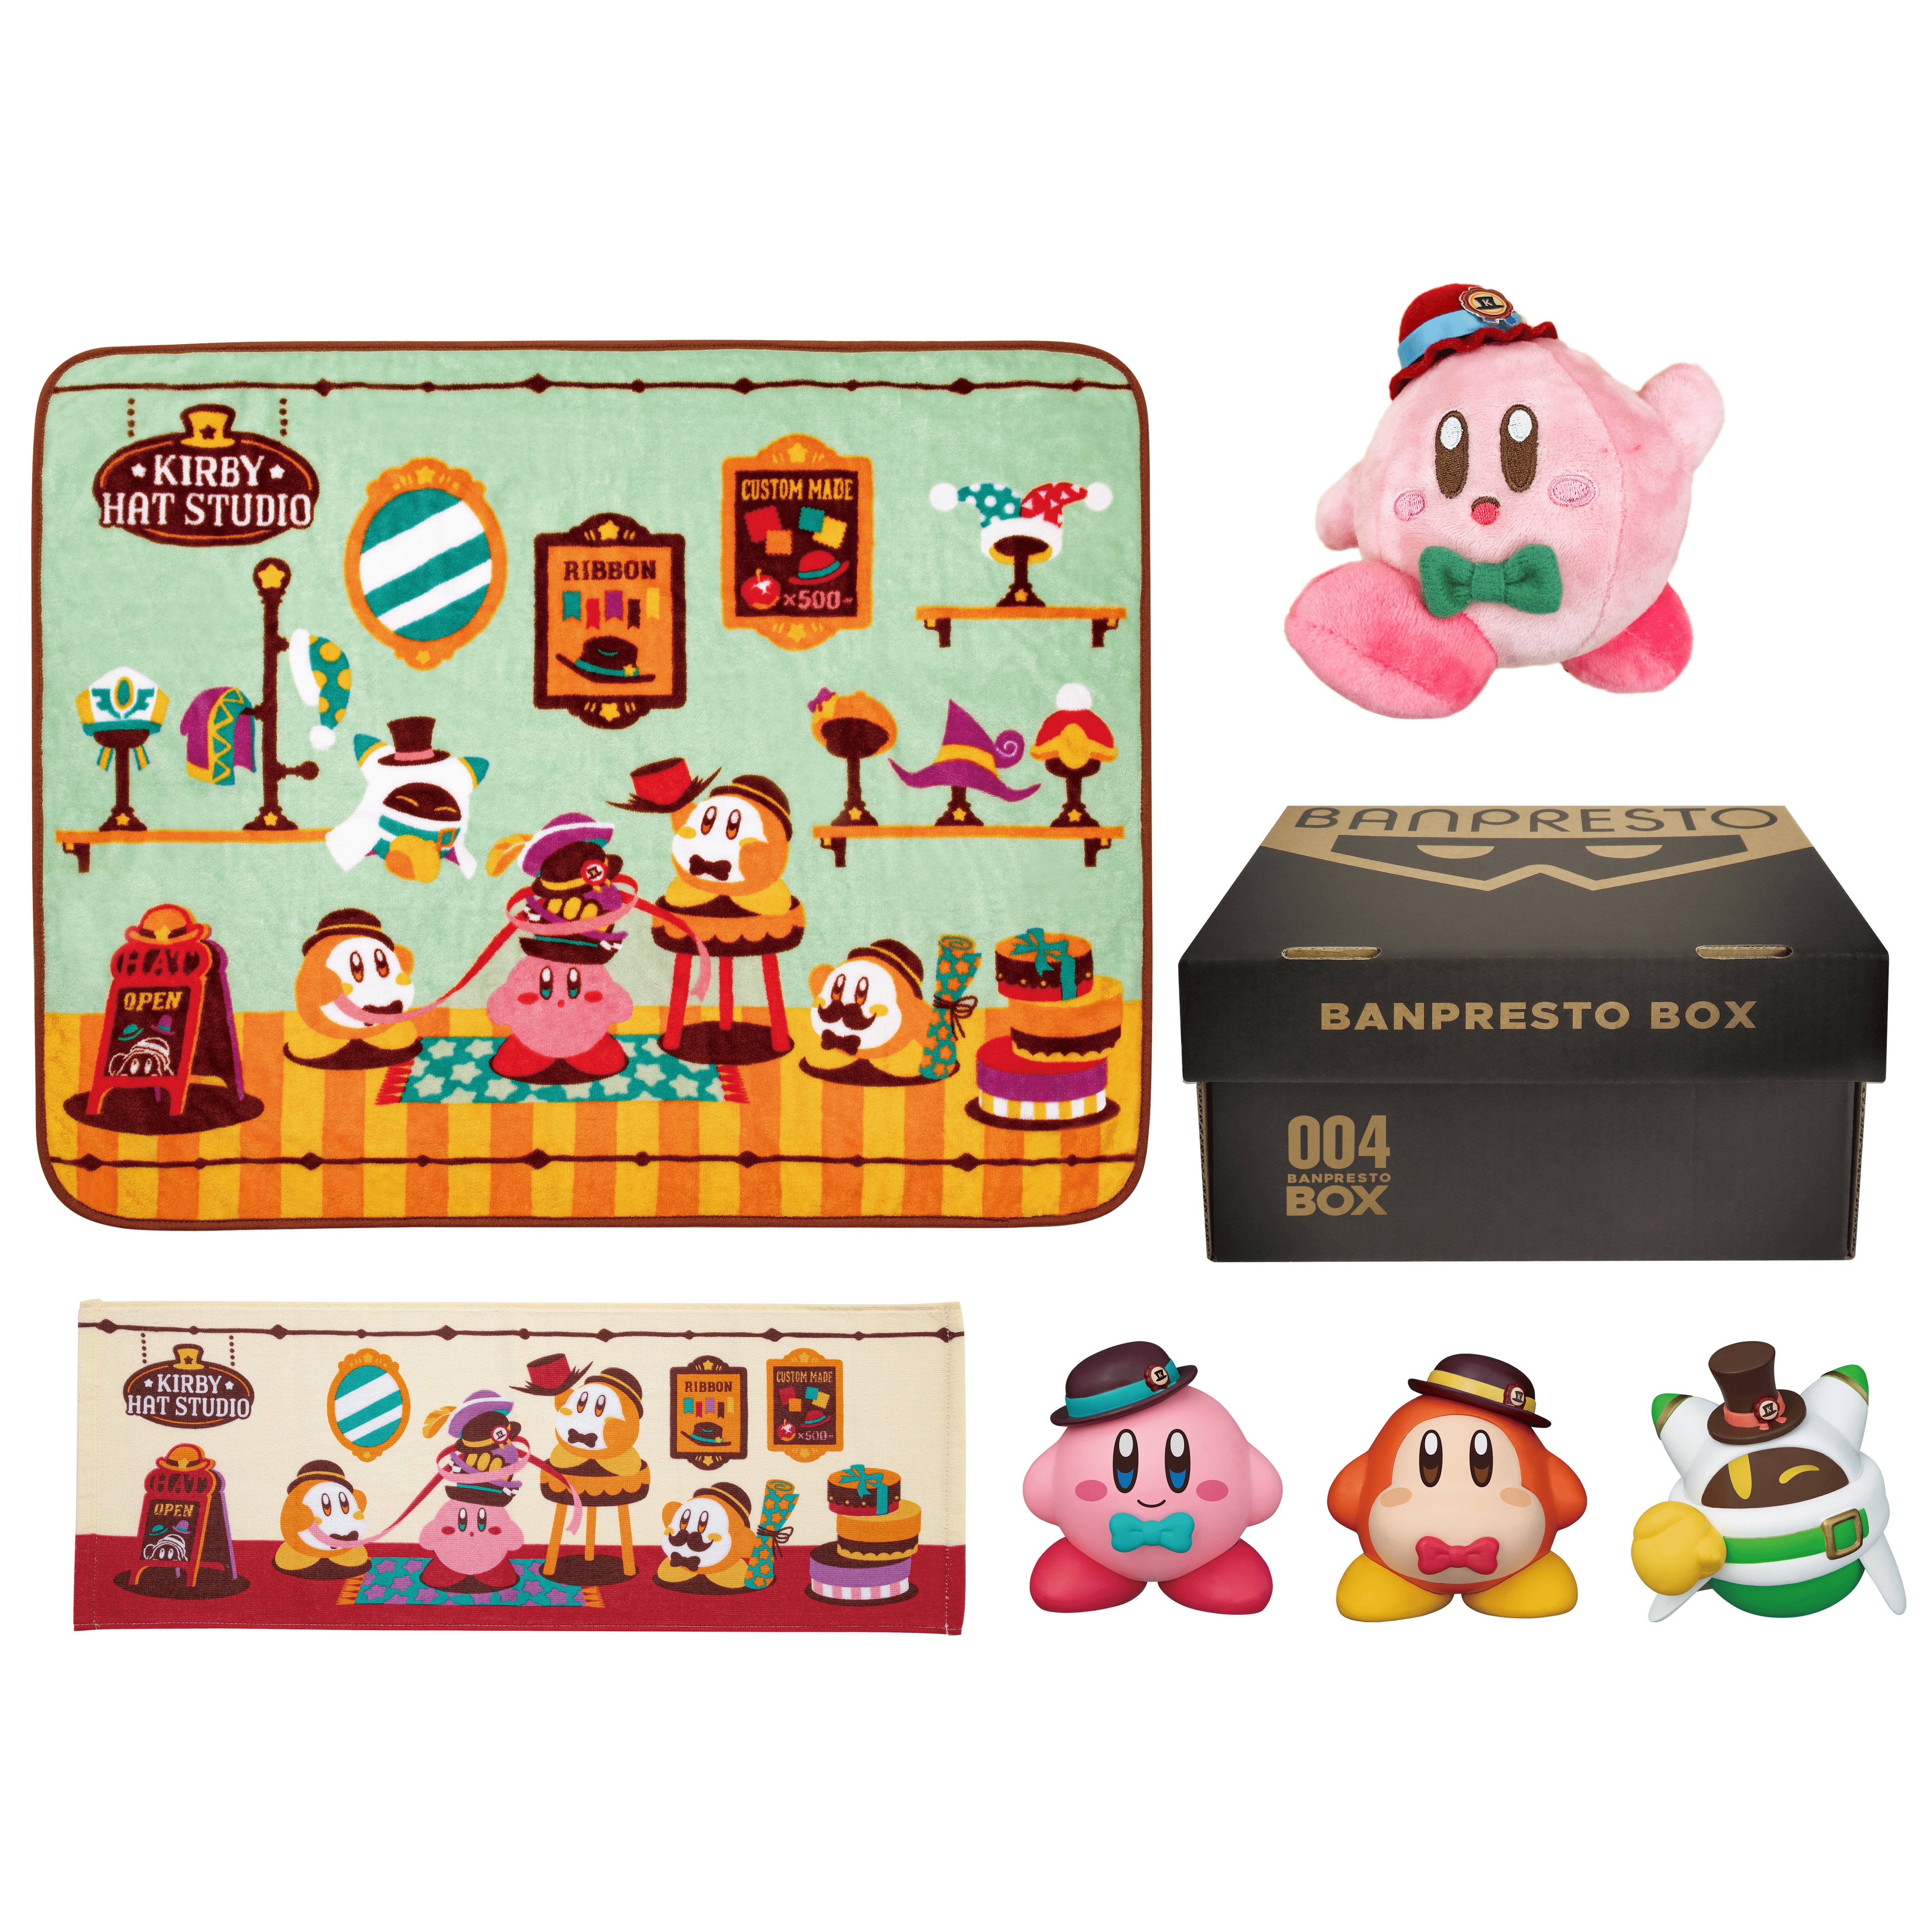 BANPRESTO BOX KIRBY HAT STUDIO [Feb 2021 Delivery]